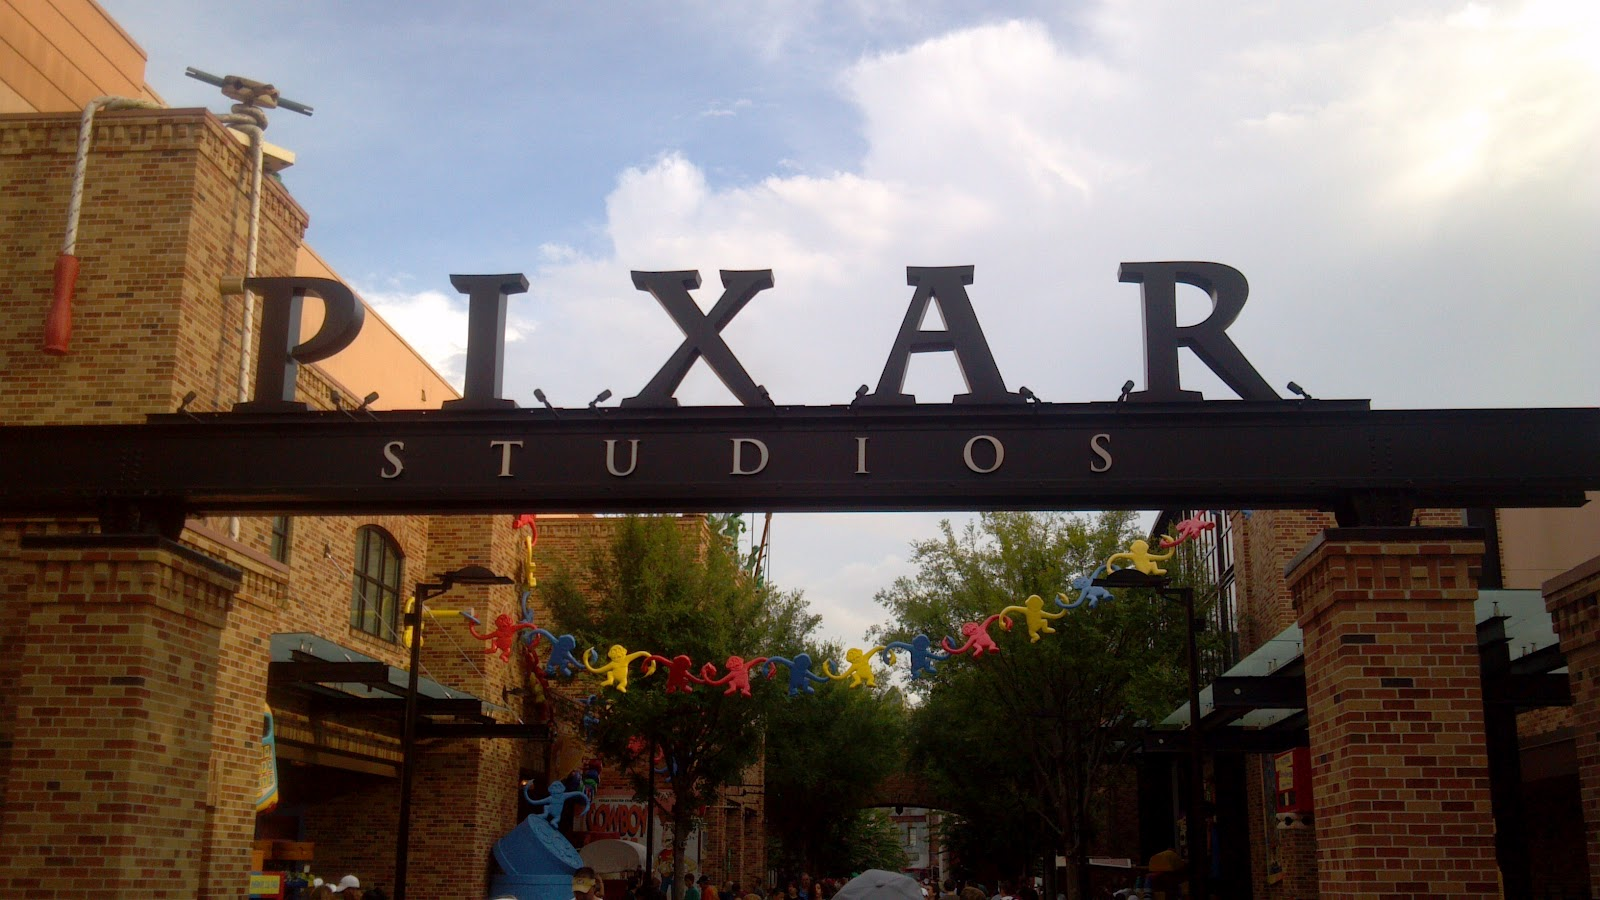 Orlando Area Theme Parks, Attractions, and Eateries